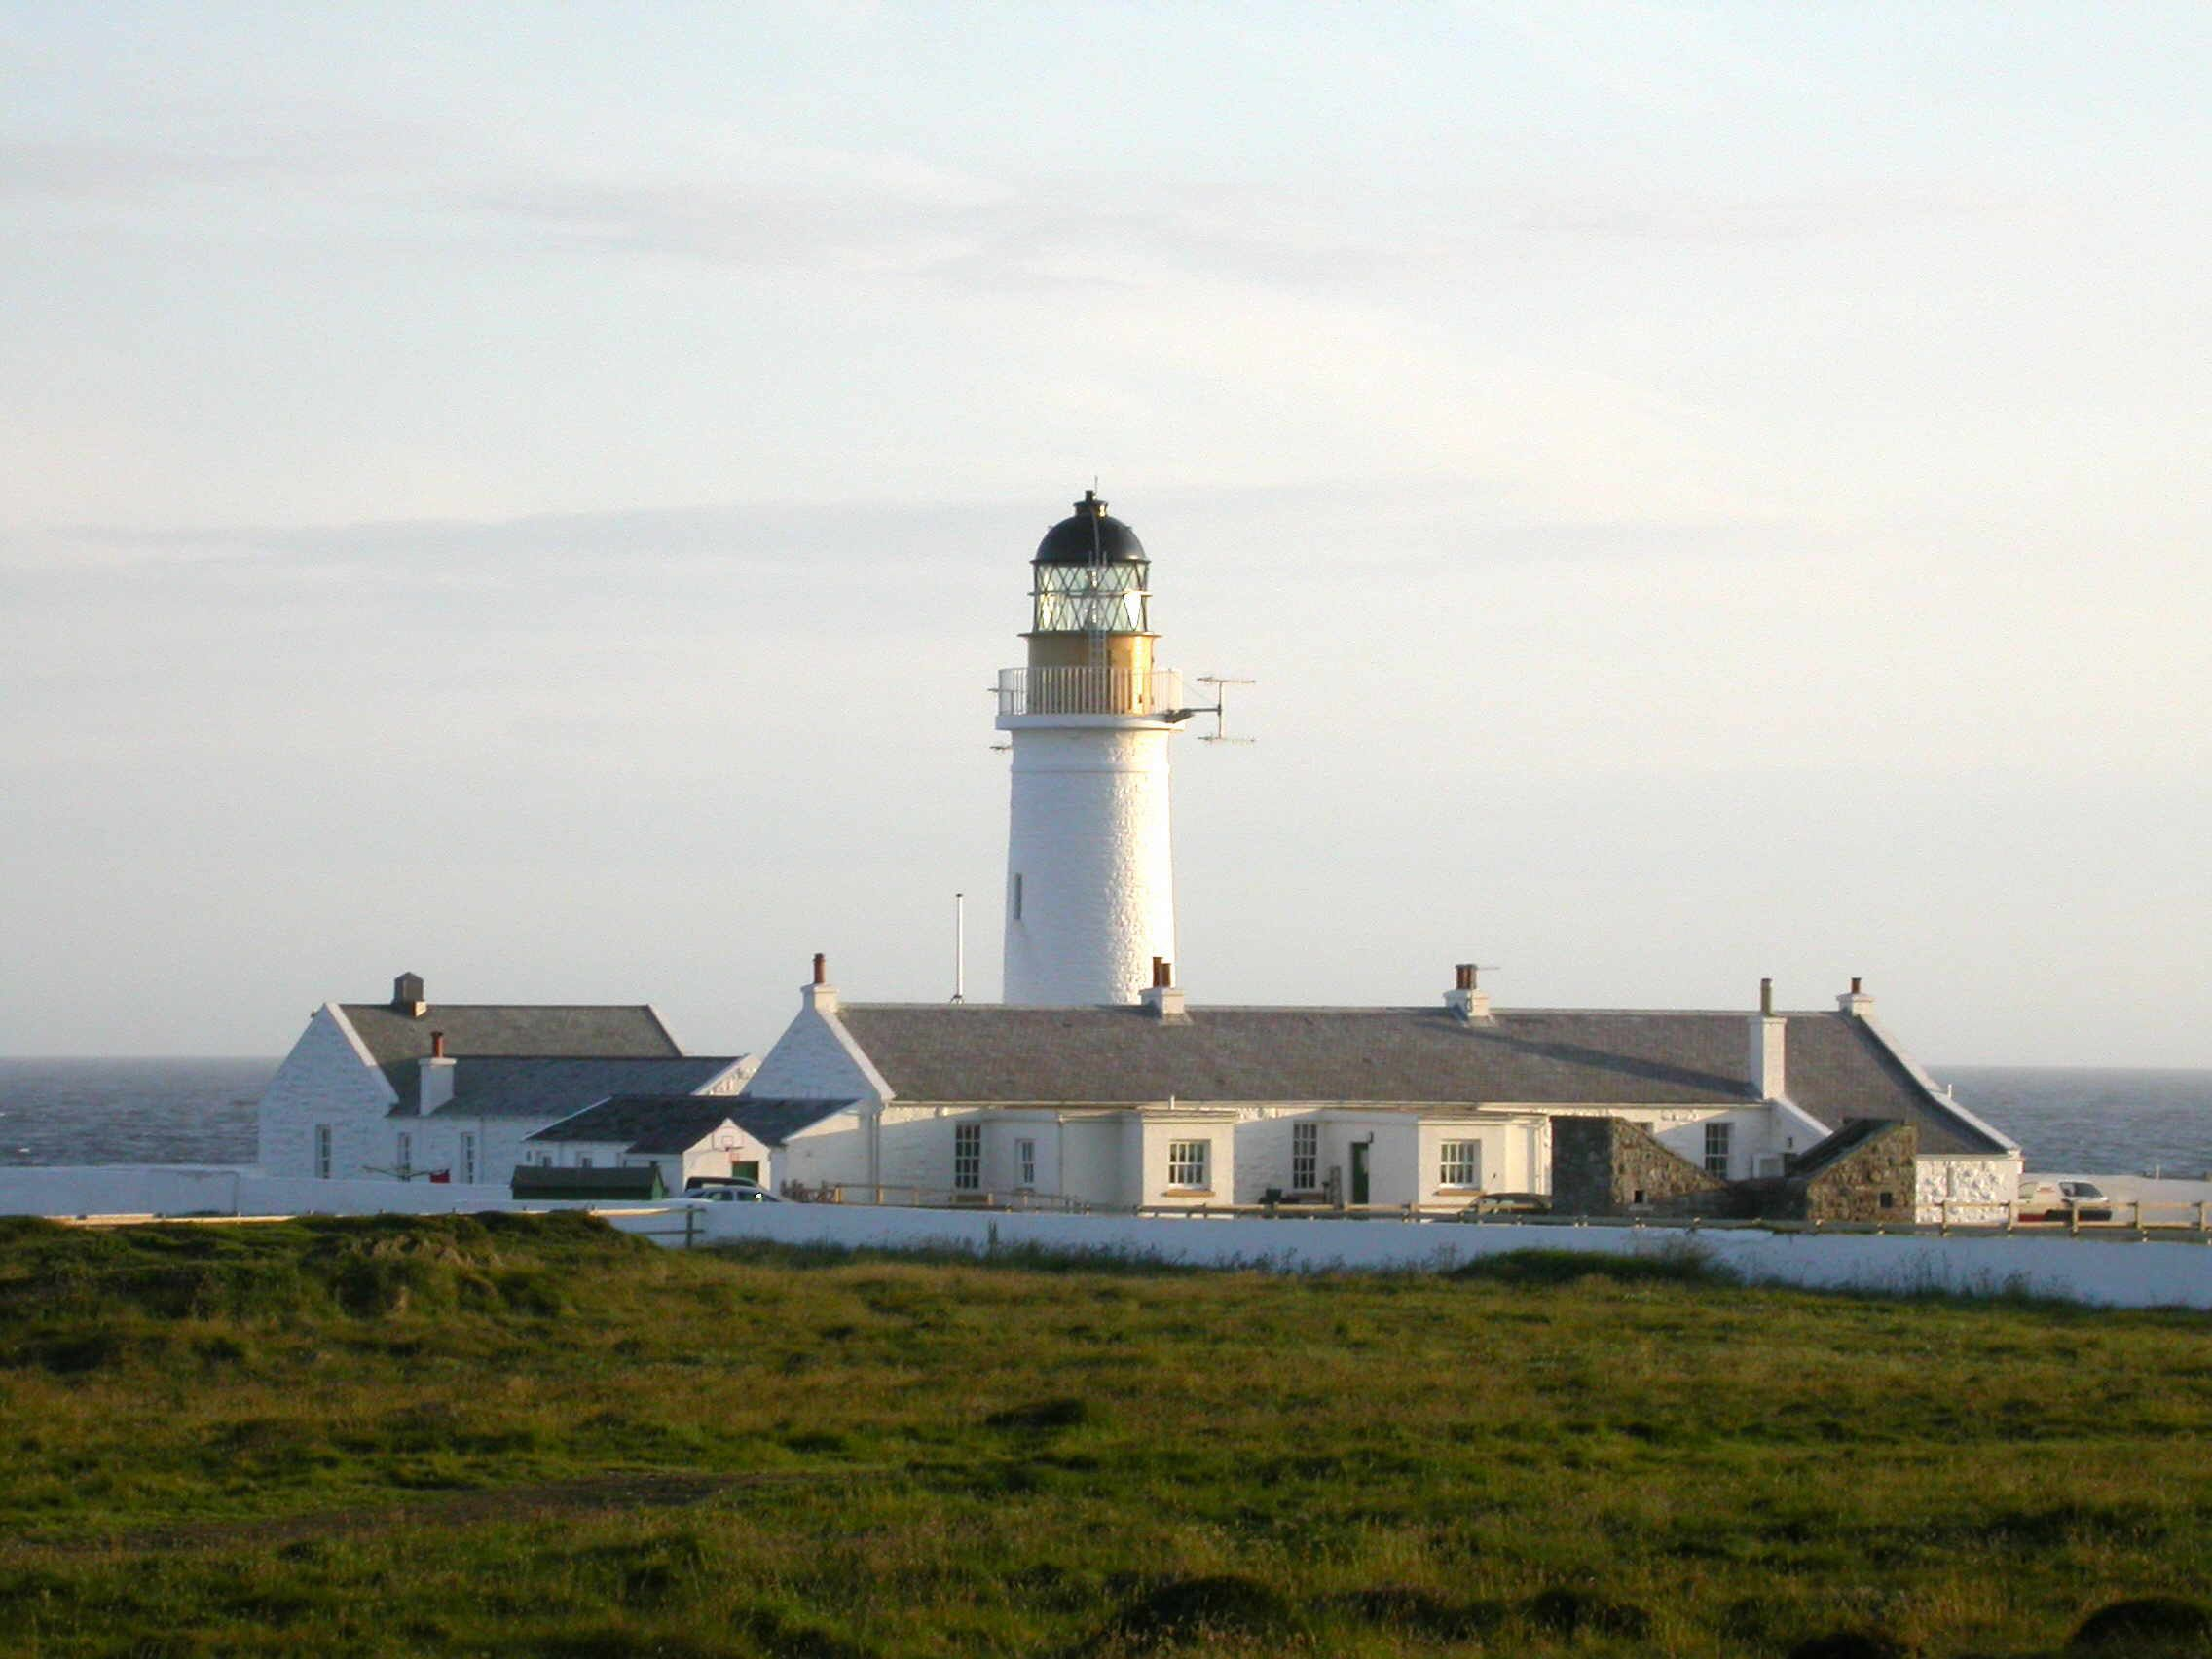 Langness lighthouse, now a private home